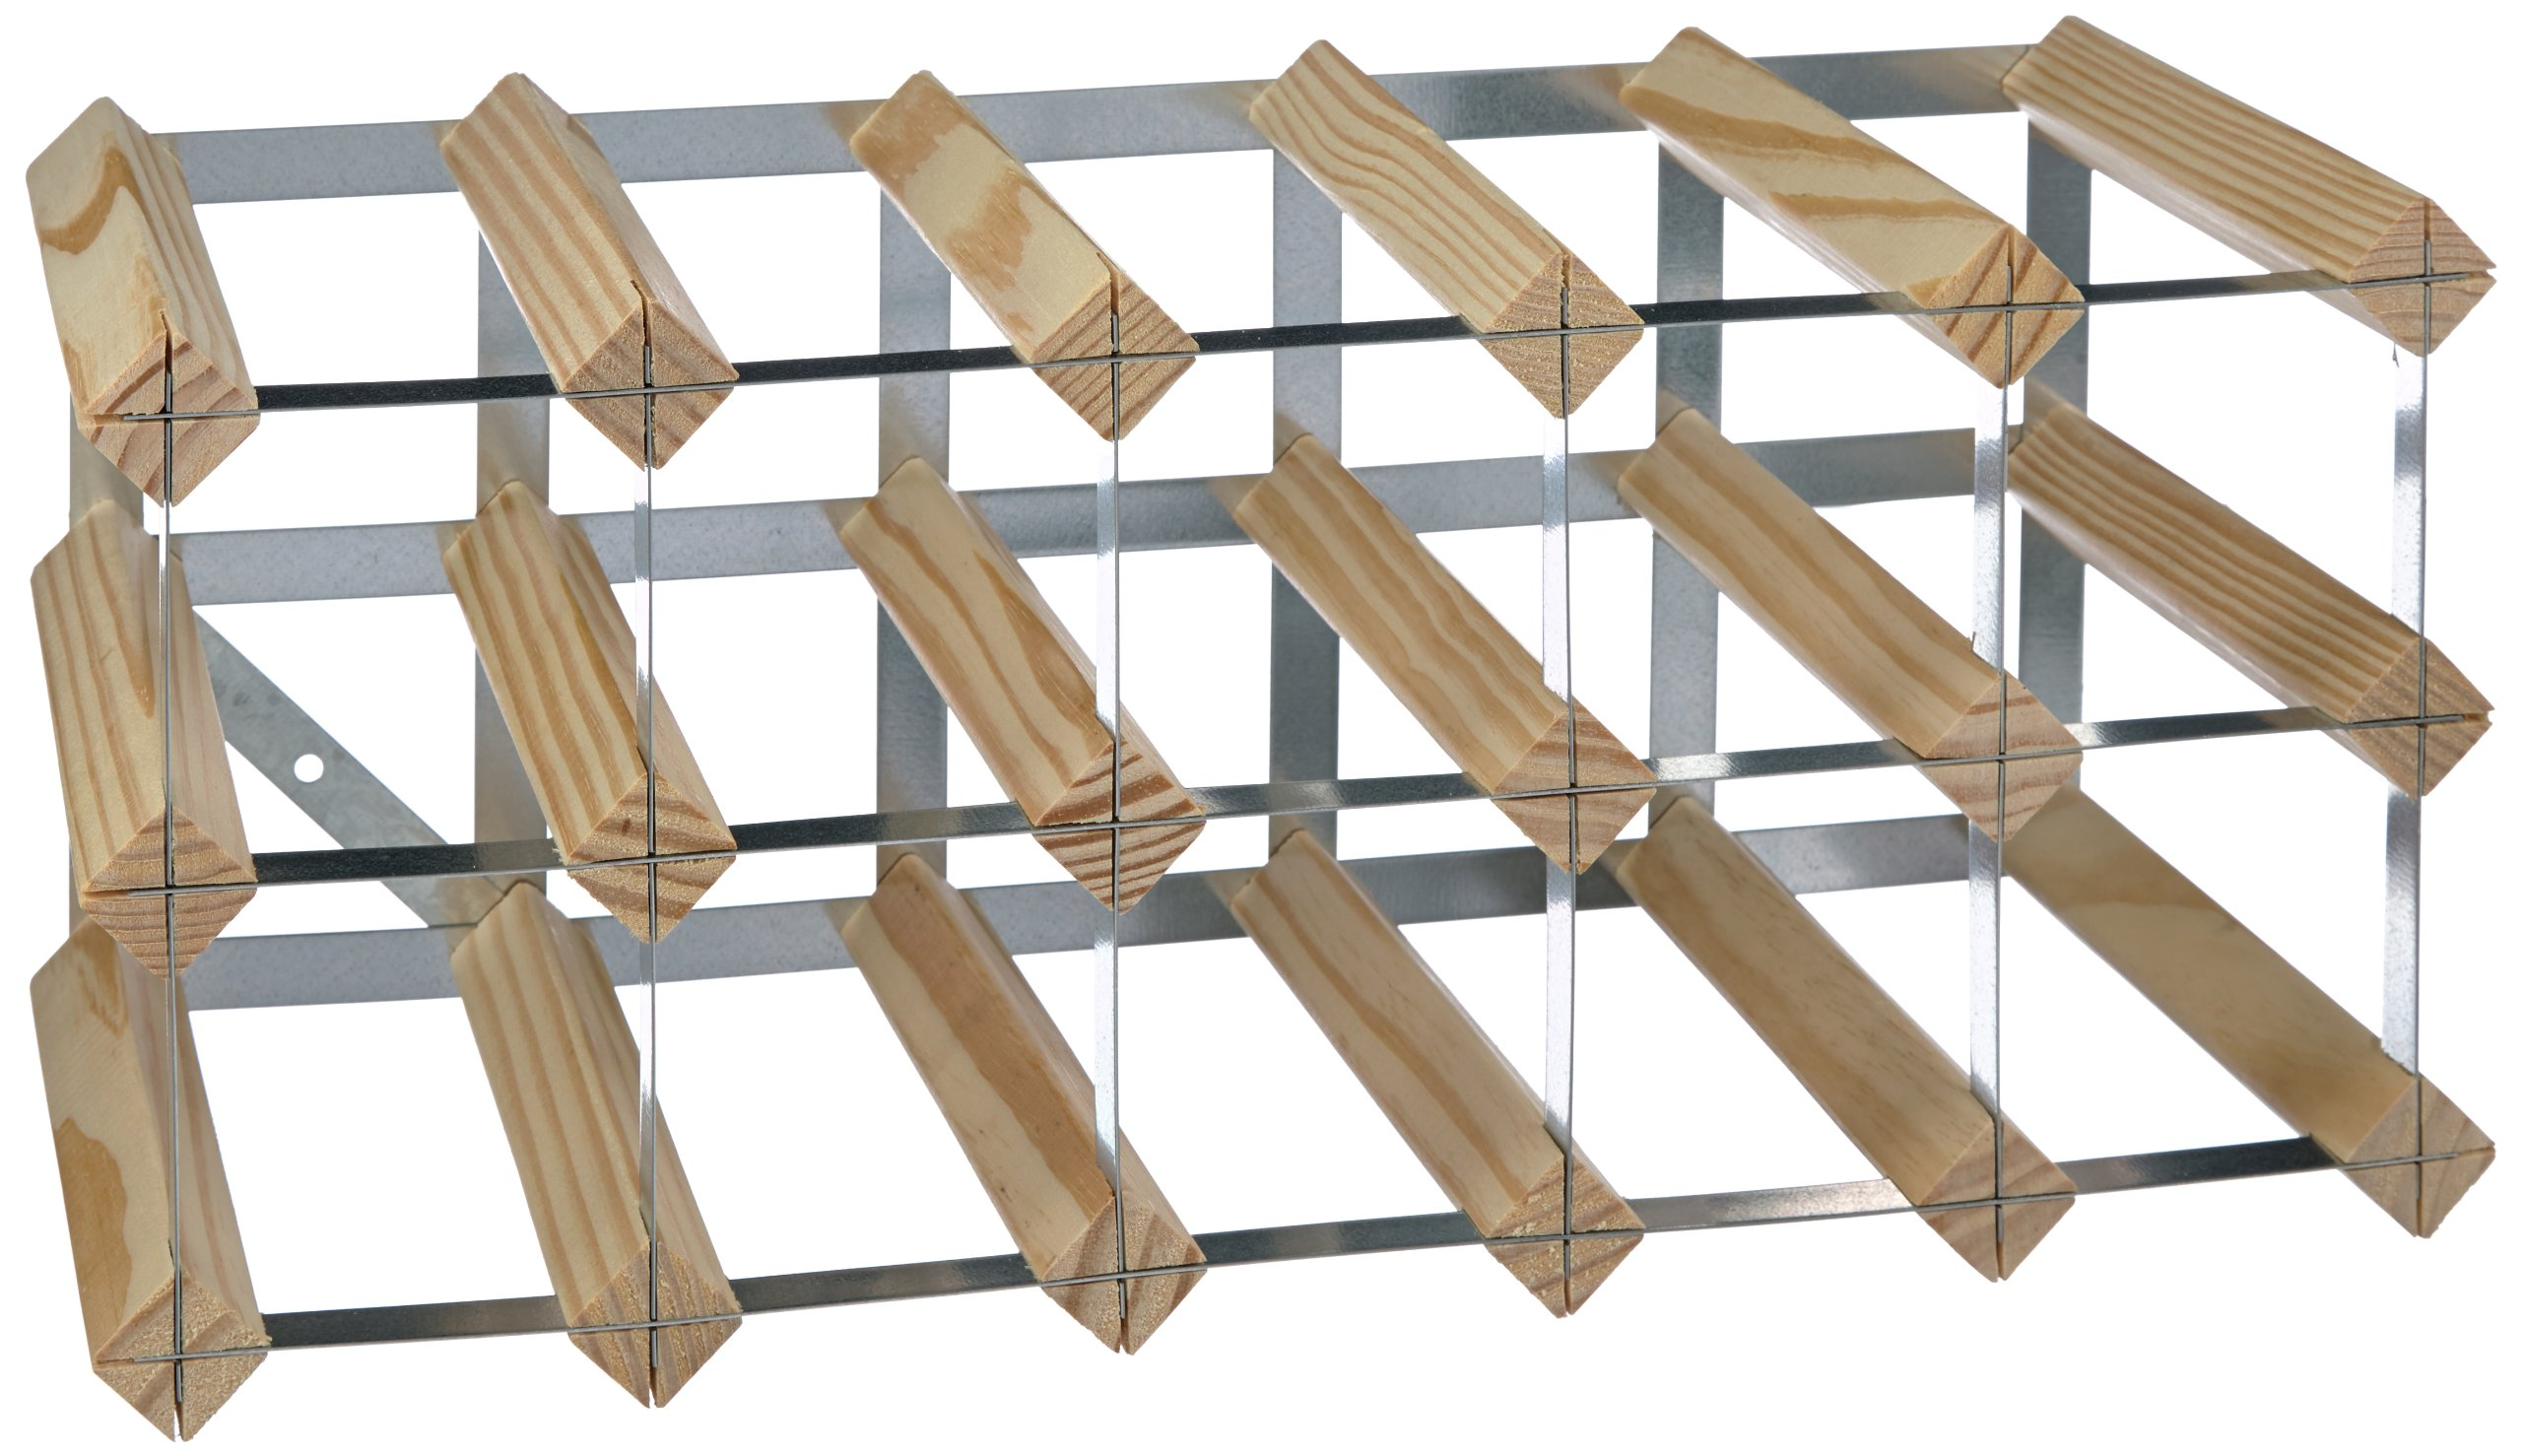 15-Bottle Ready-to-Assemble Wine Rack - Natural Pine / Galvanised Steel